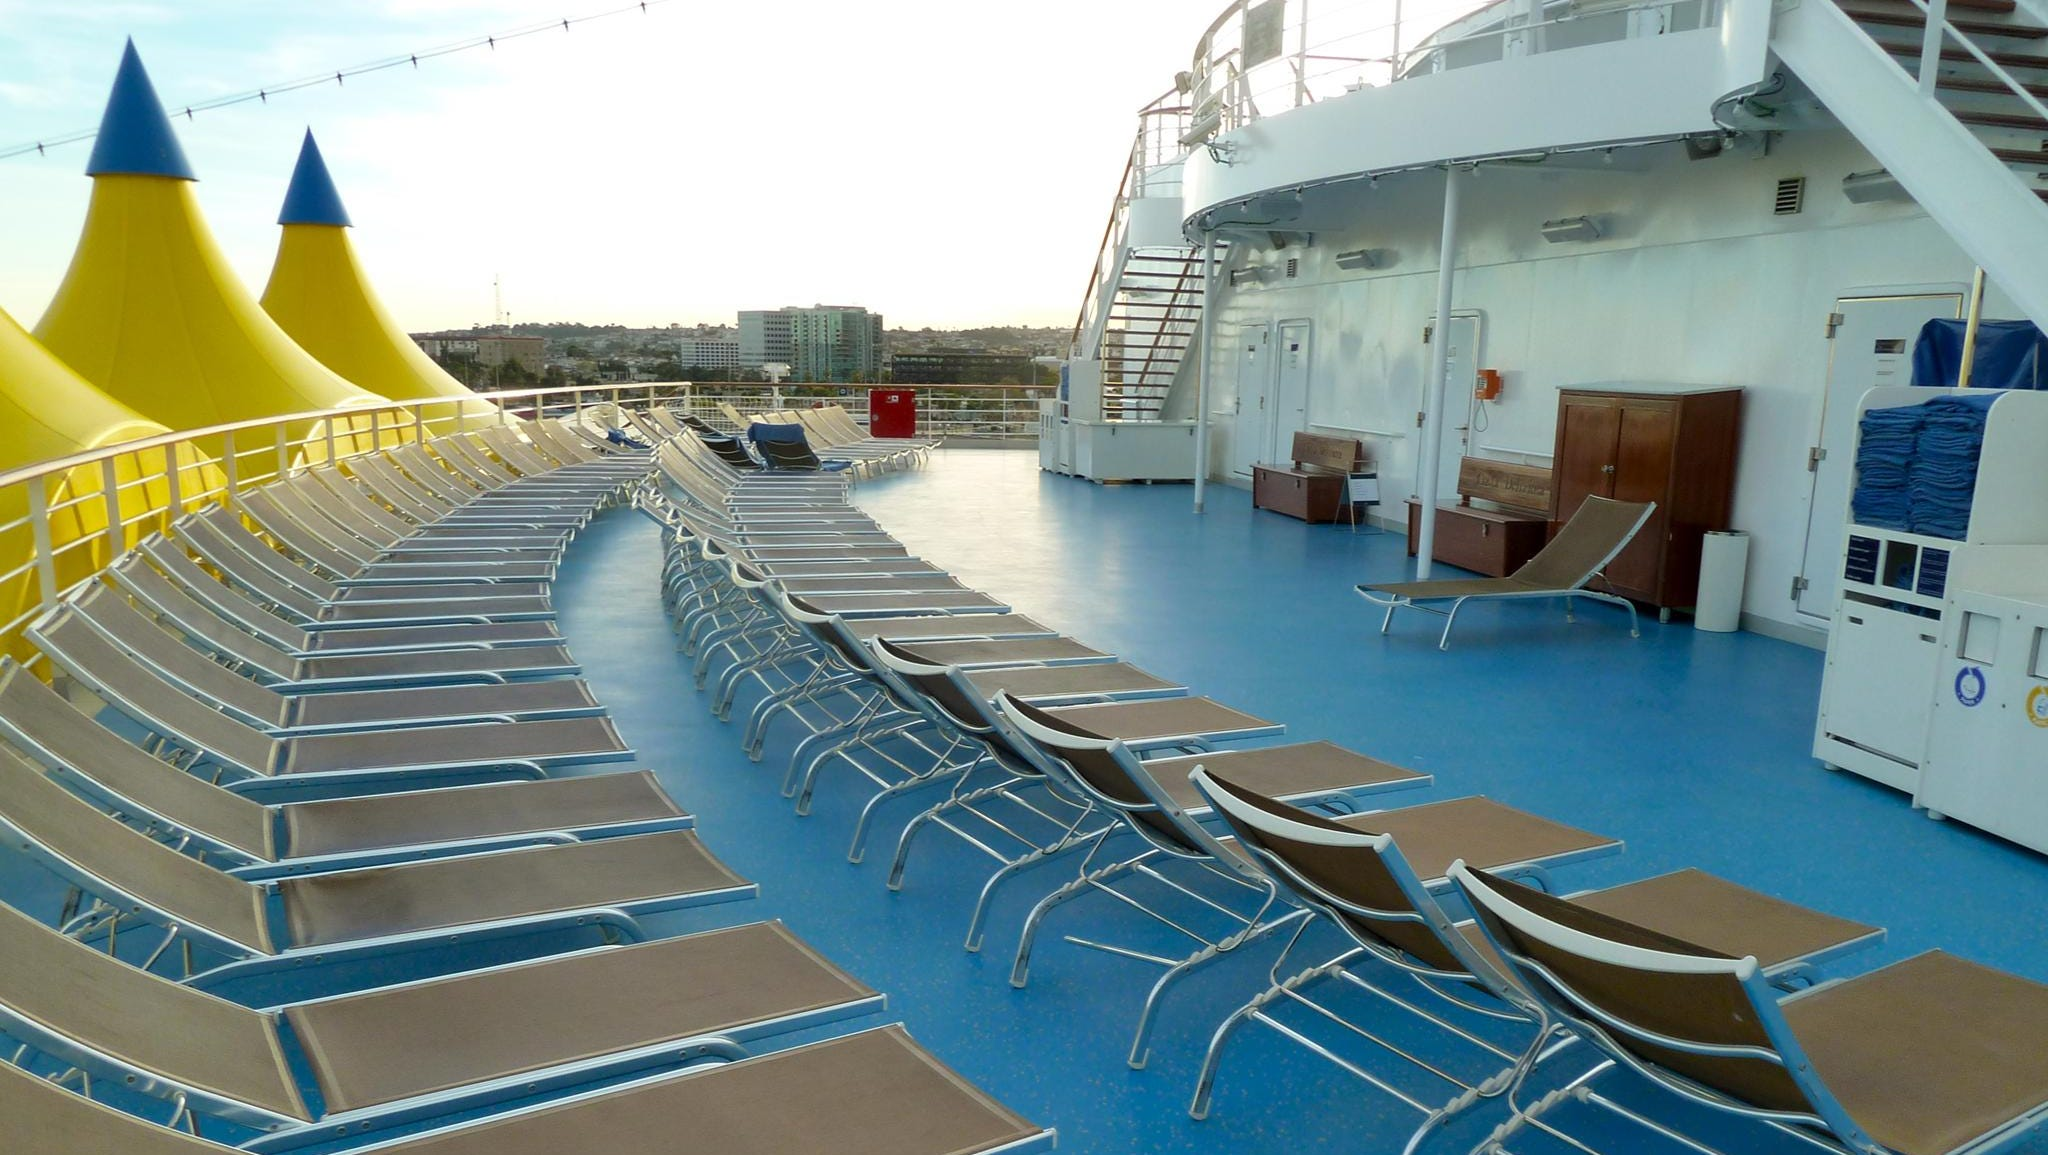 Magnolia Deck concludes with a sunning terrace.